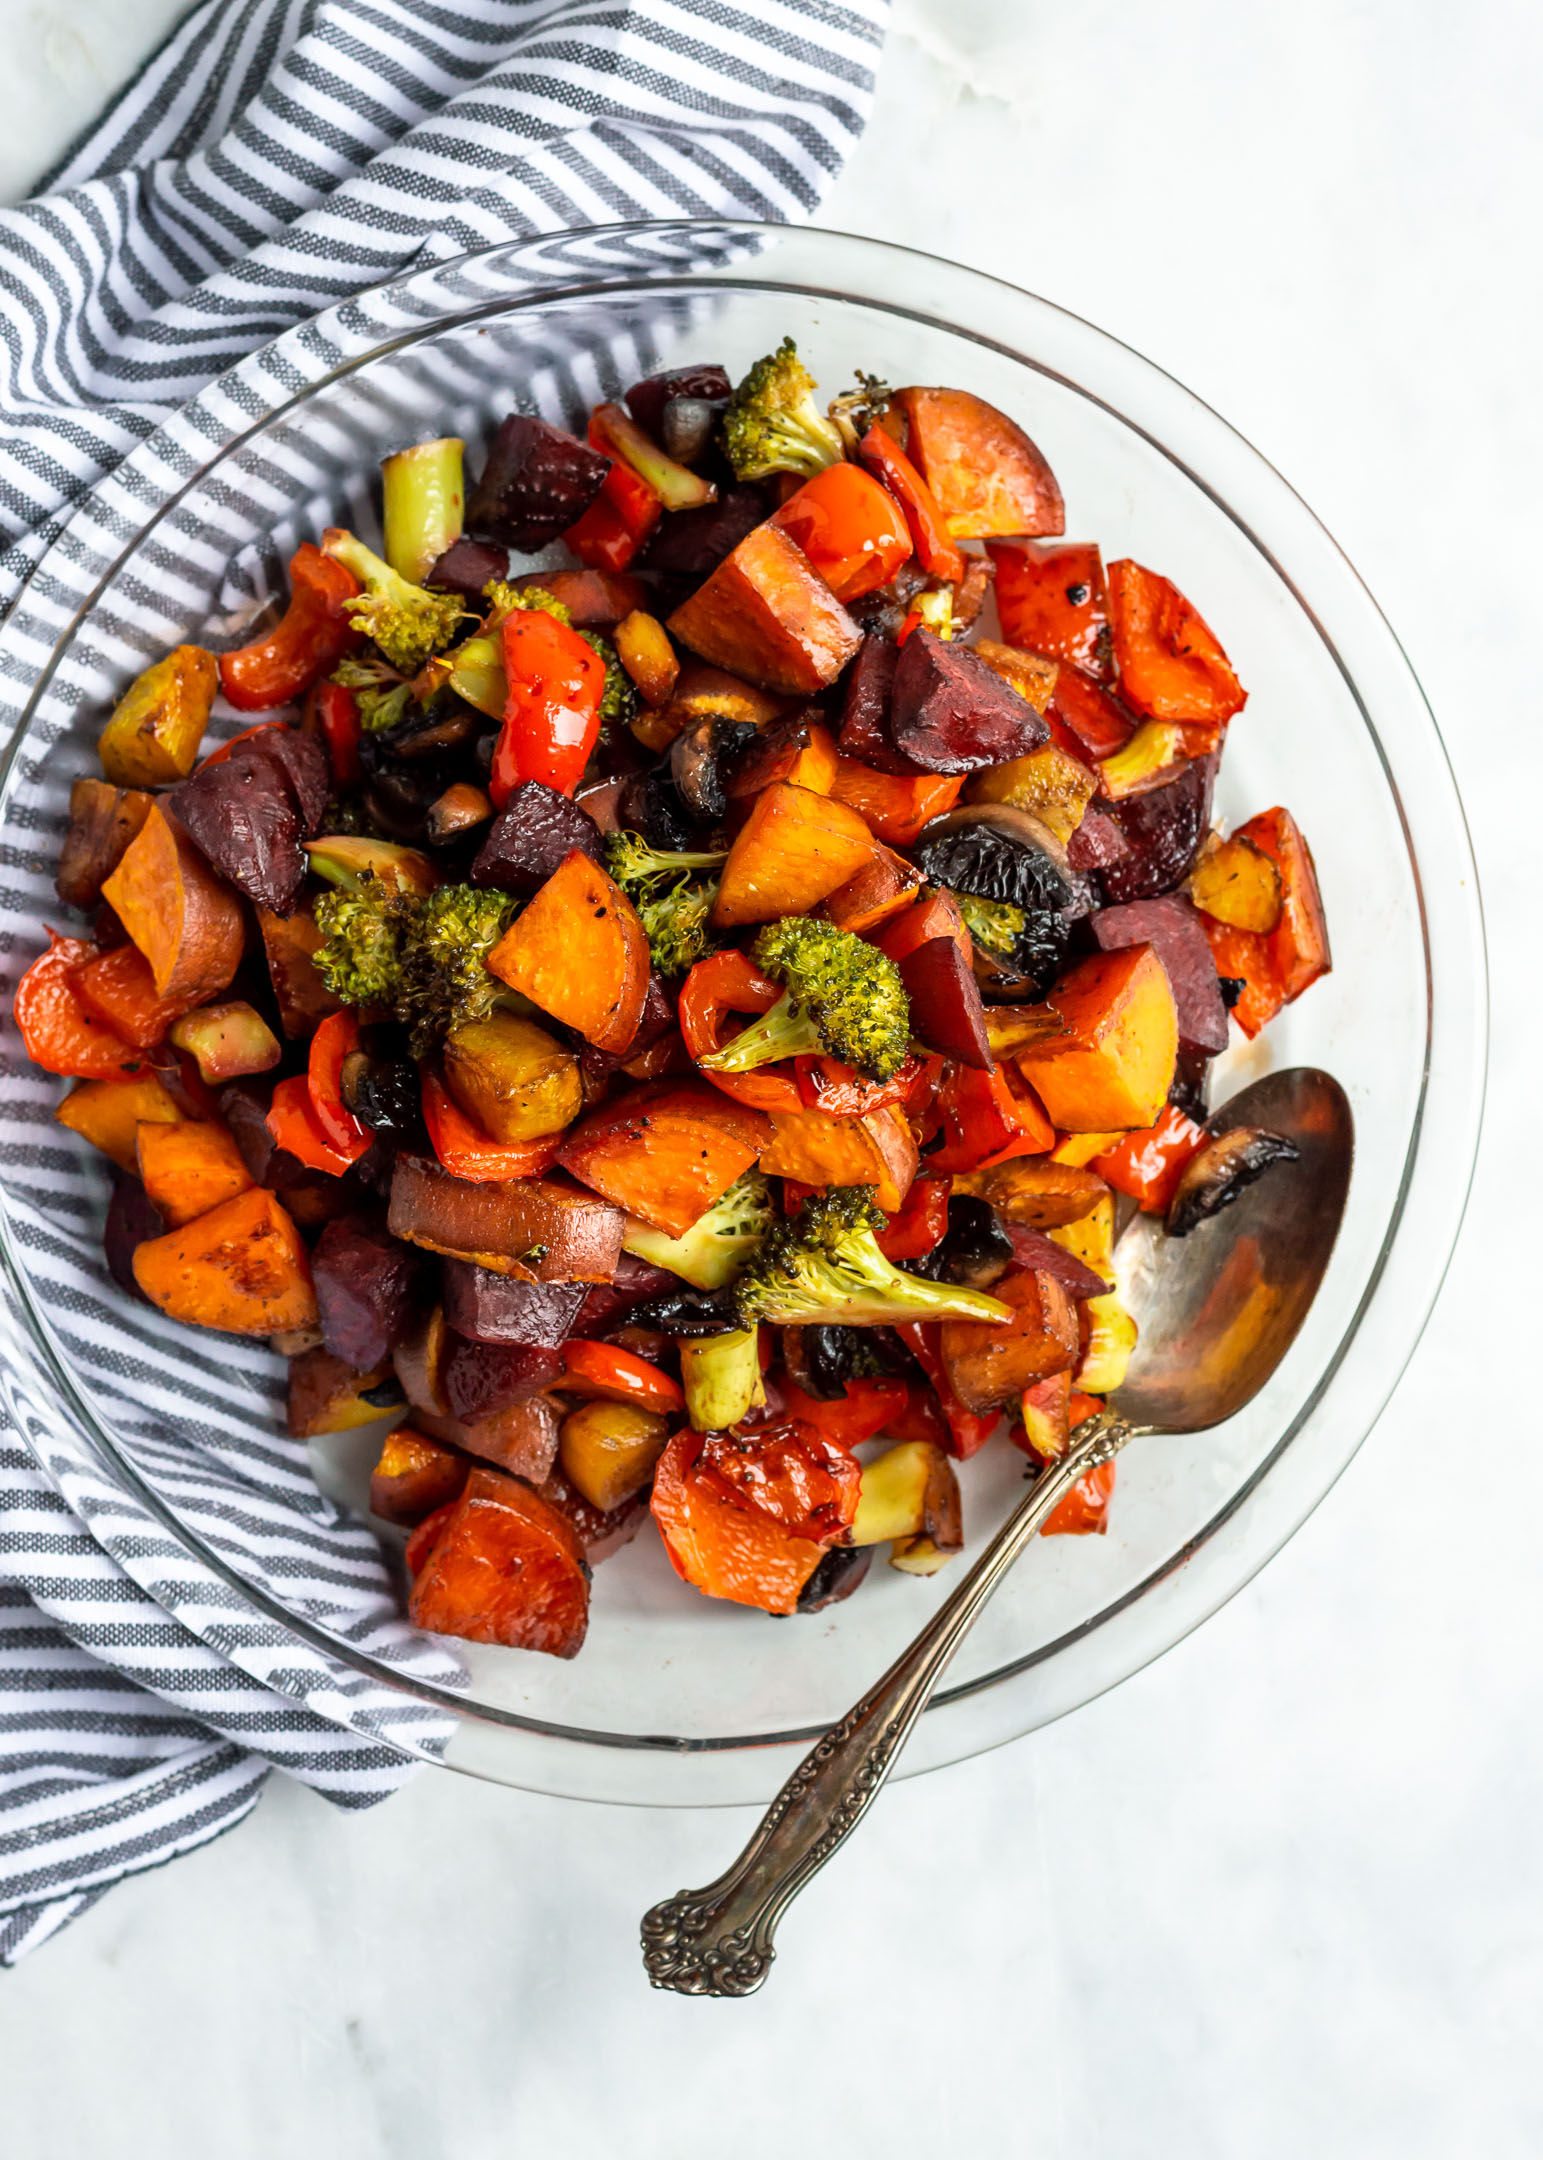 Balsamic Honey Roasted Vegetables are the best way to eat your veggies! Oven-roasted until tender, any medley of vegetables works for this recipe for a healthy and easy side to any lunch or dinner.  These Balsamic Honey Roasted Vegetables are also a great make ahead and meal prep idea.